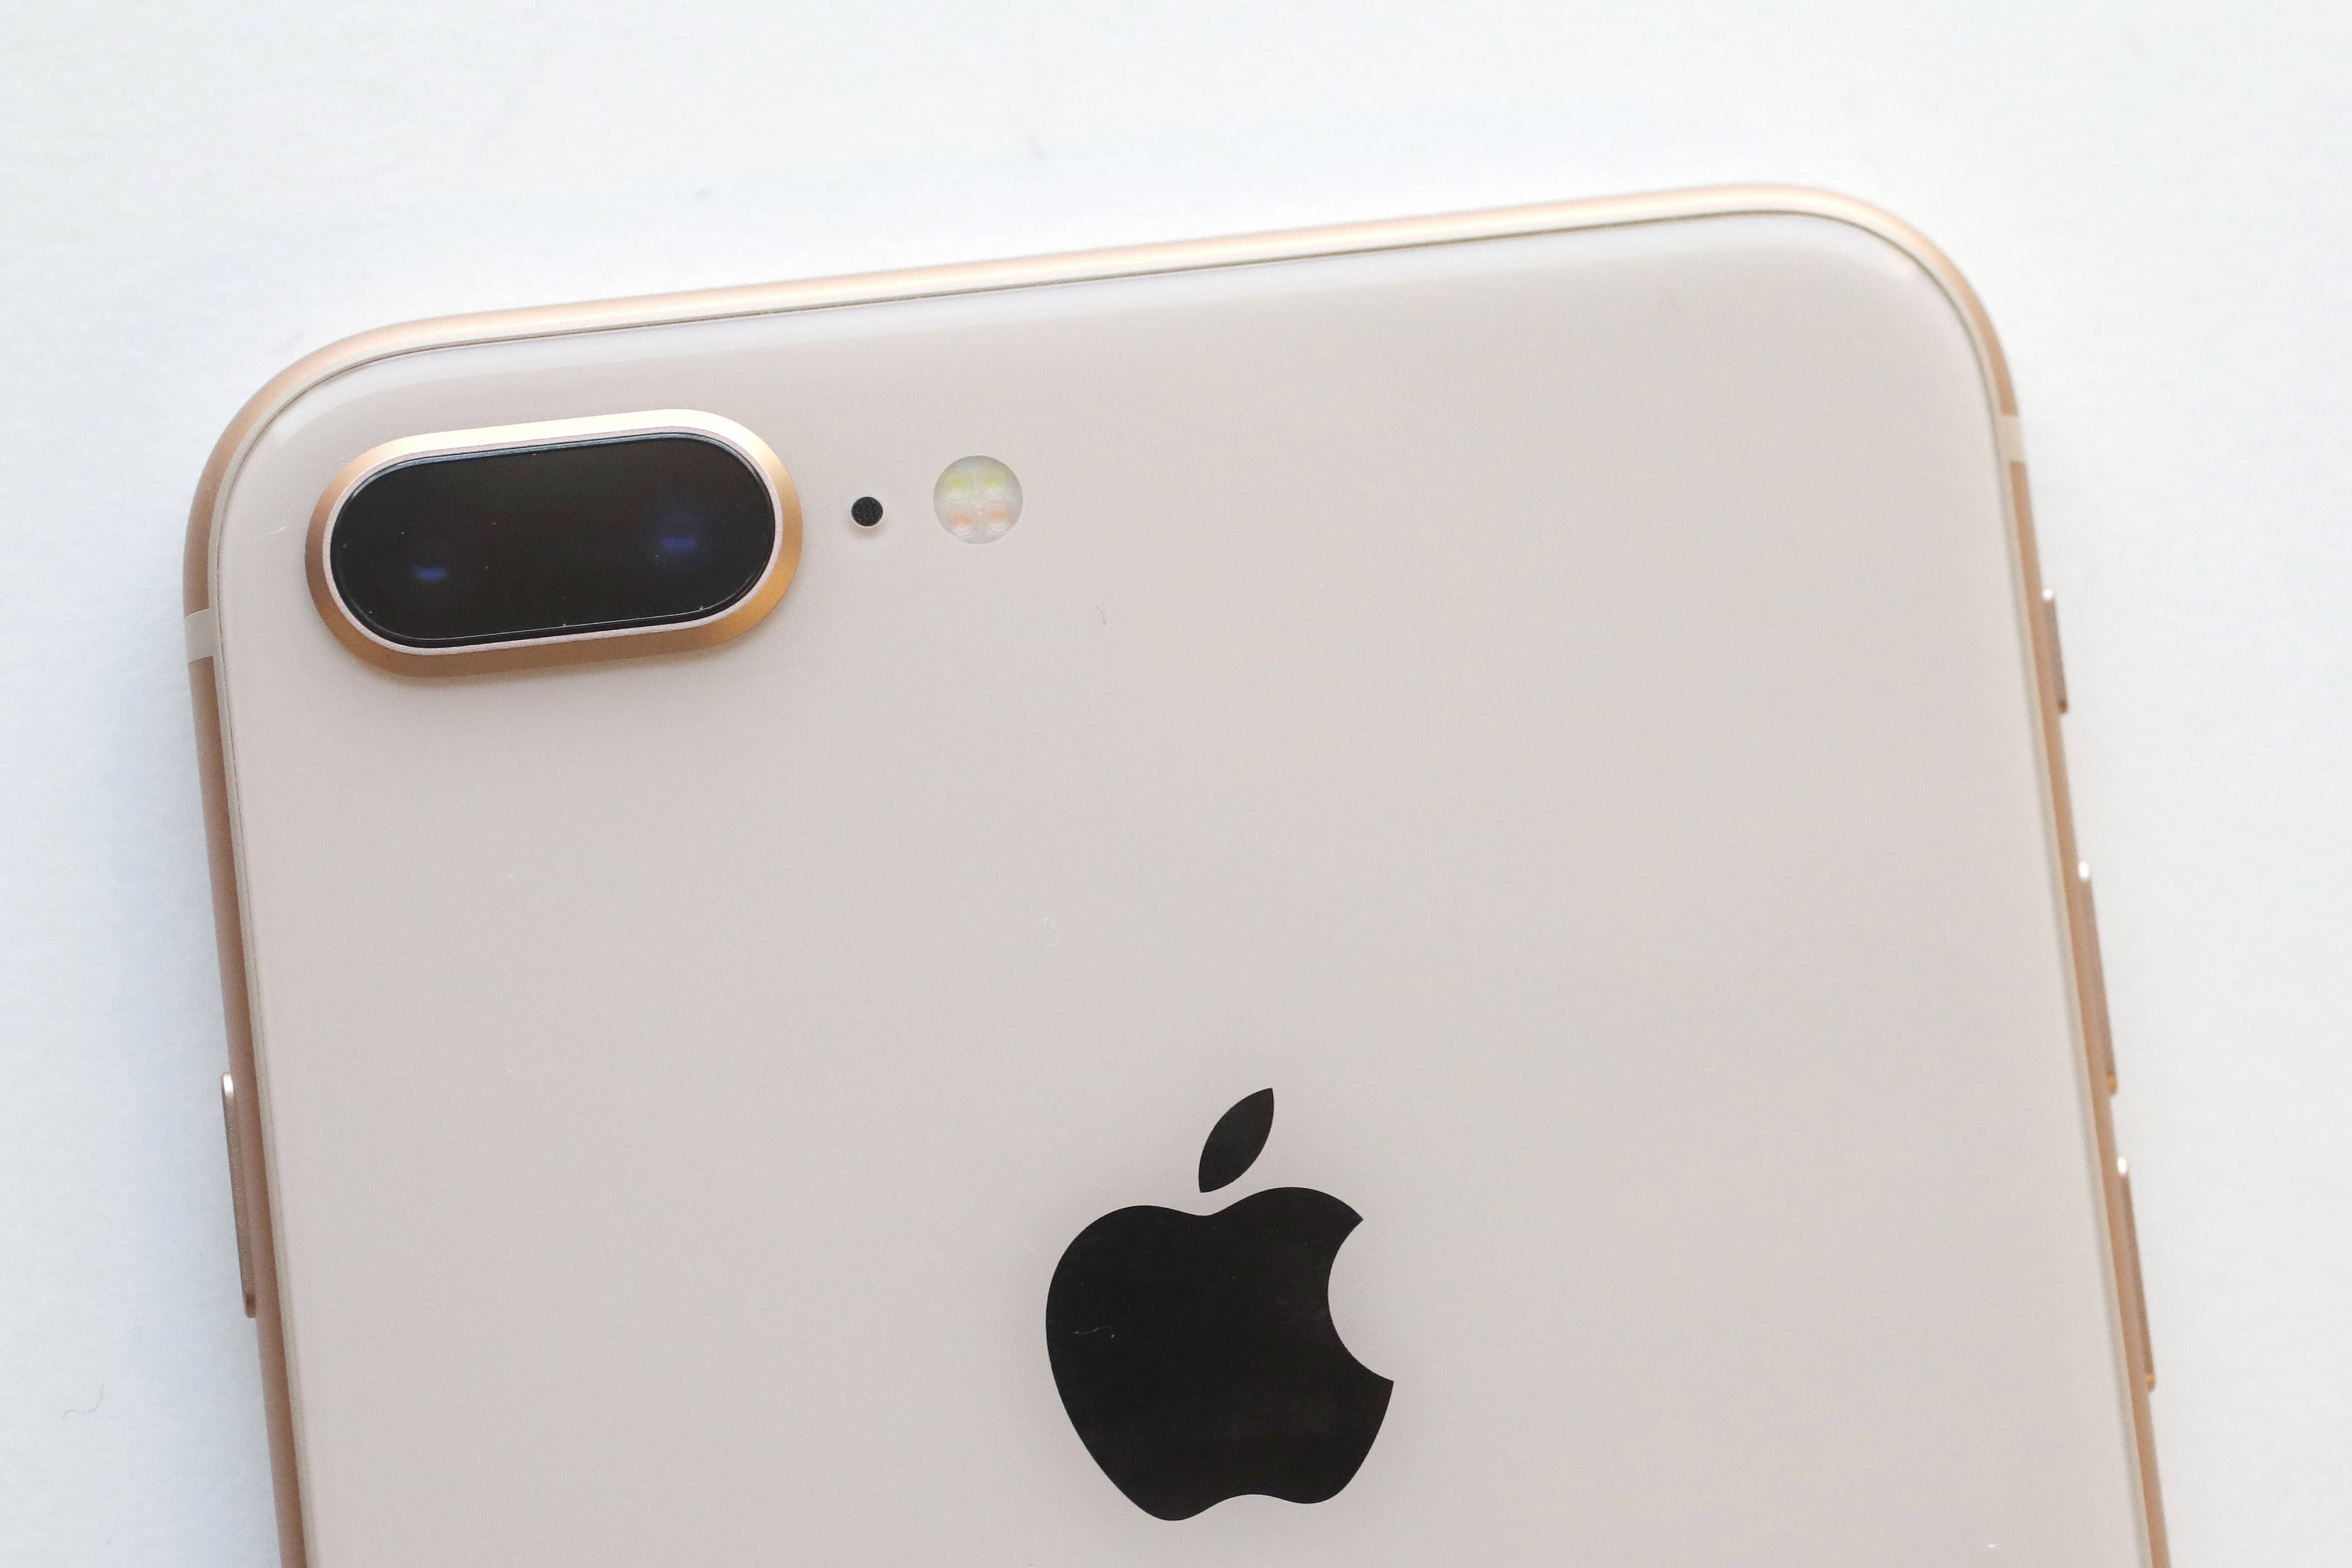 Apple has been known to announce its new iPhone installments at the company's annual keynote in September. Usually, the unveiling is followed by a drop in prices on the current phones in anticipation of the new models making September a good month to shop for iPhones.